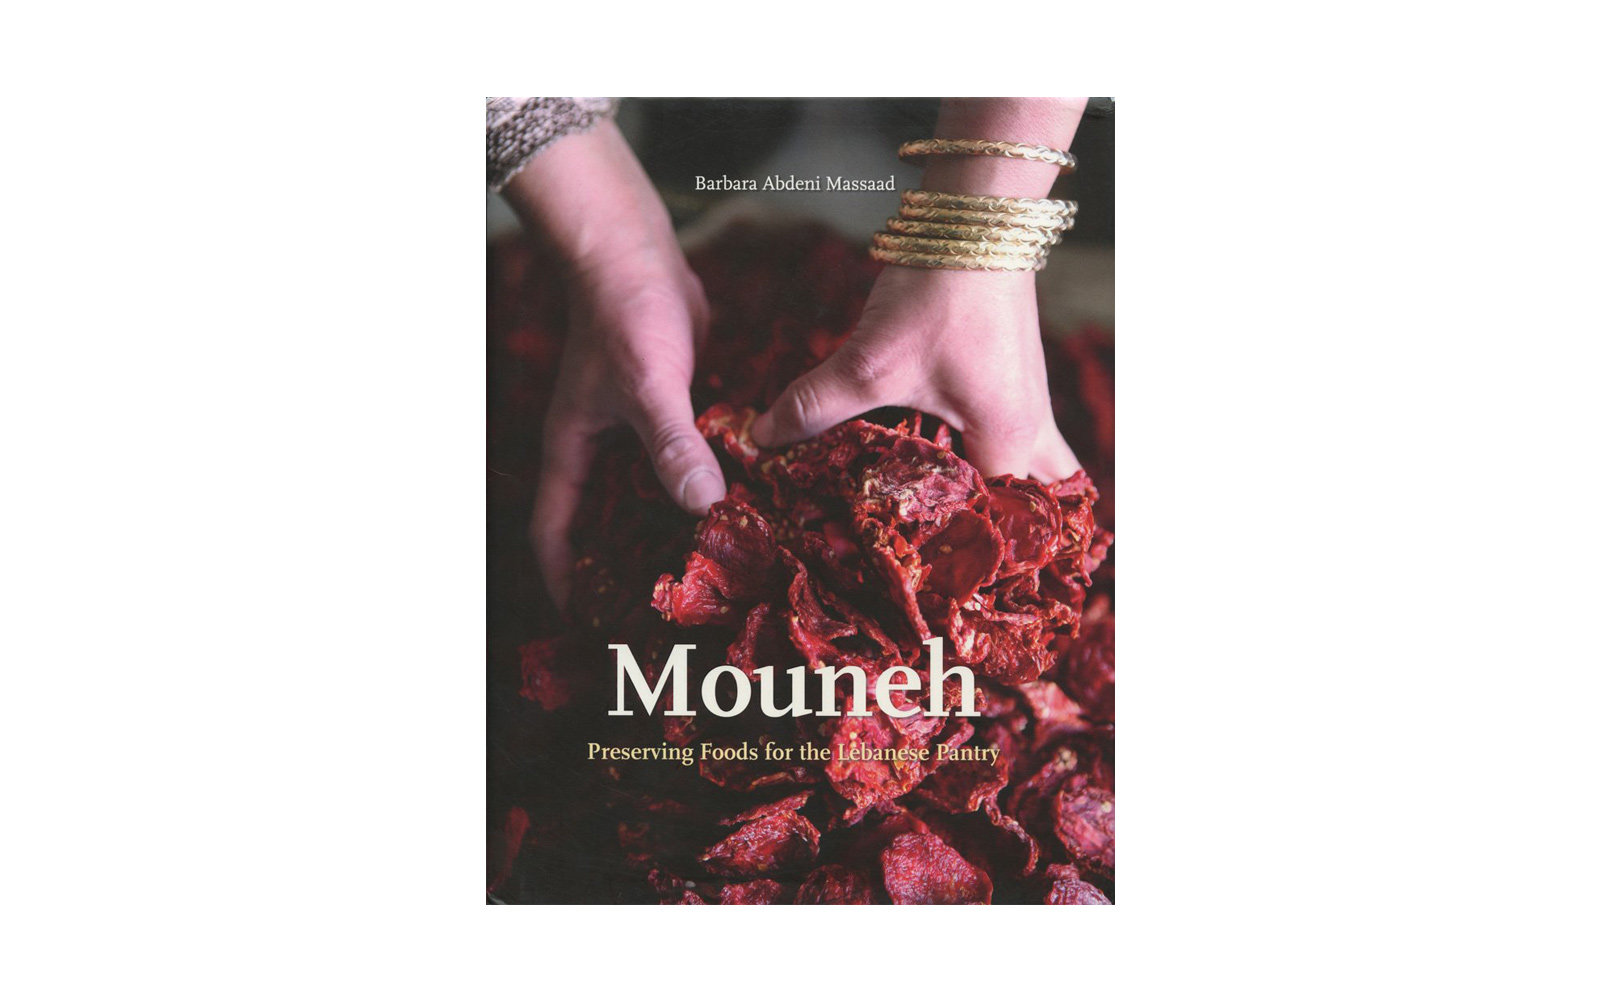 Mouneh, Preserving Foods for the Lebanese Pantry, by Barbara Abdeni Massaad